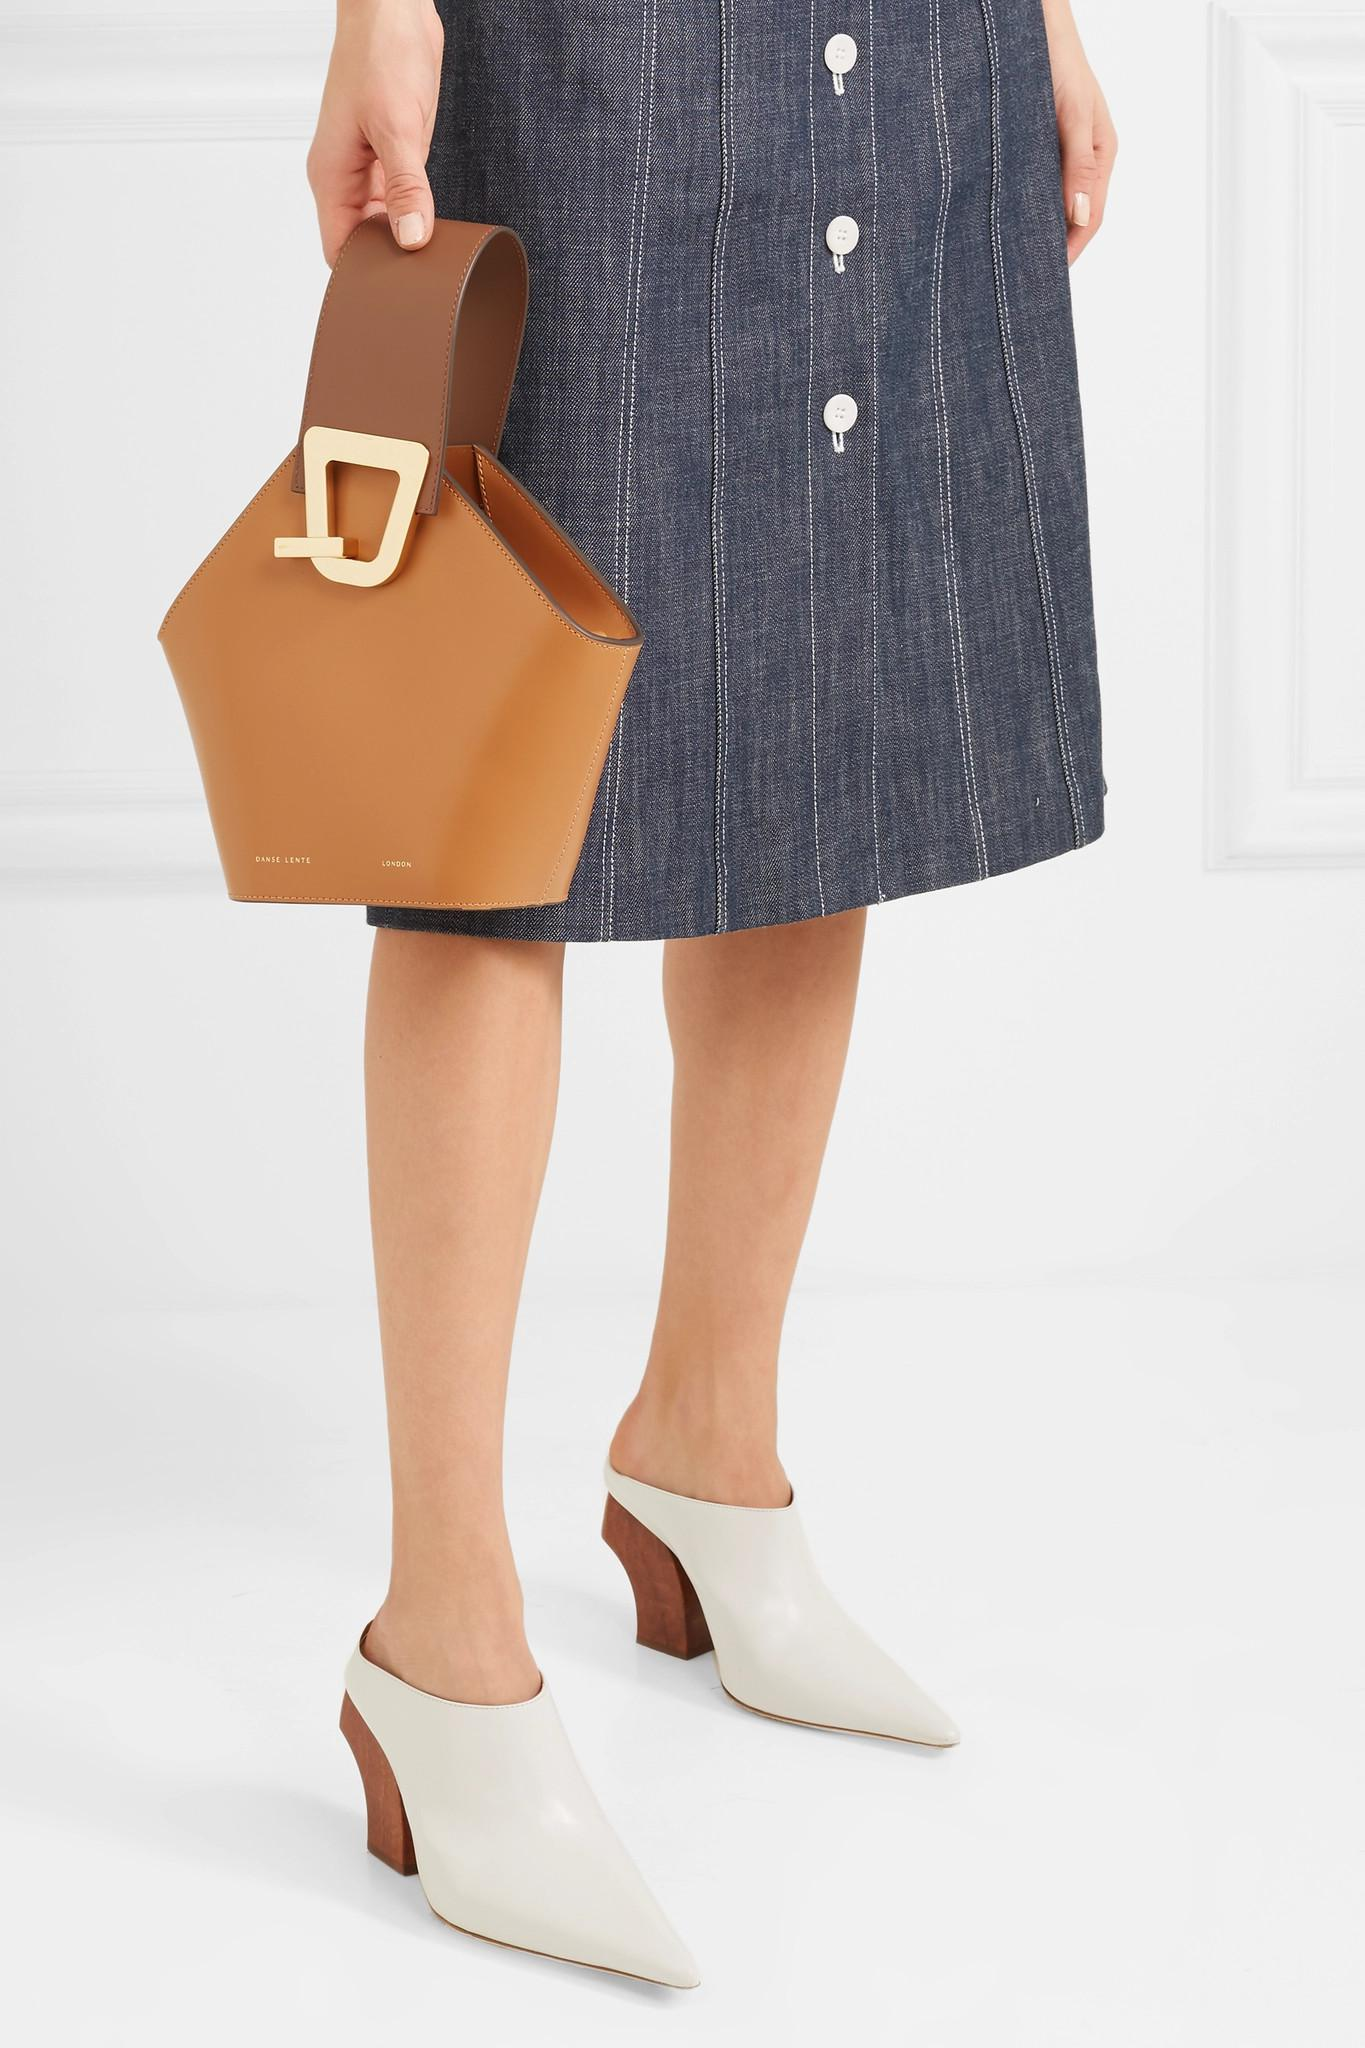 ad32bb213 Danse Lente Mini Johnny Leather Top Handle Bag in Brown - Lyst